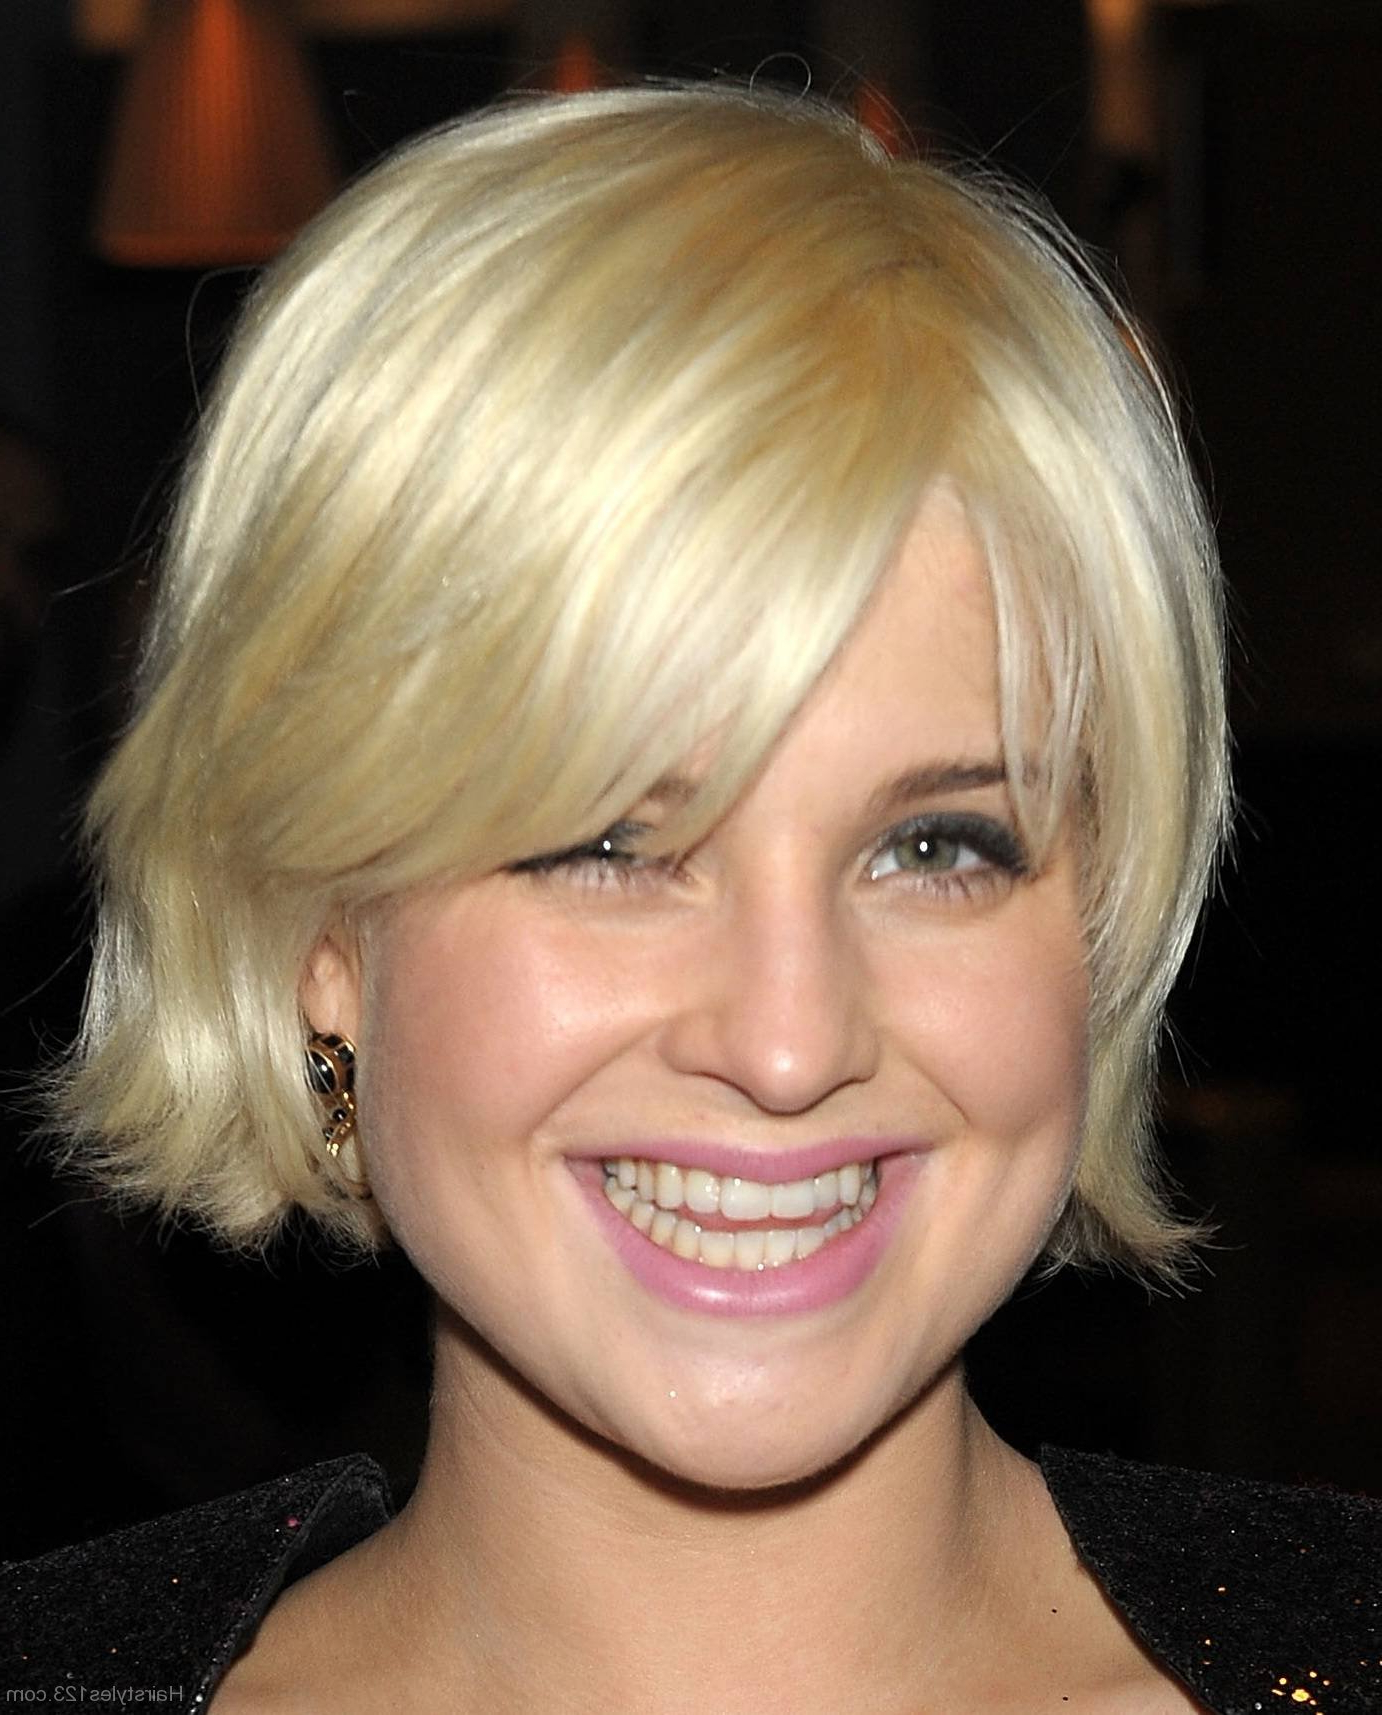 Short Choppy Layered Bob Hairstyles   Hairstyle For Women & Man Inside Short Choppy Layered Bob Haircuts (View 20 of 25)